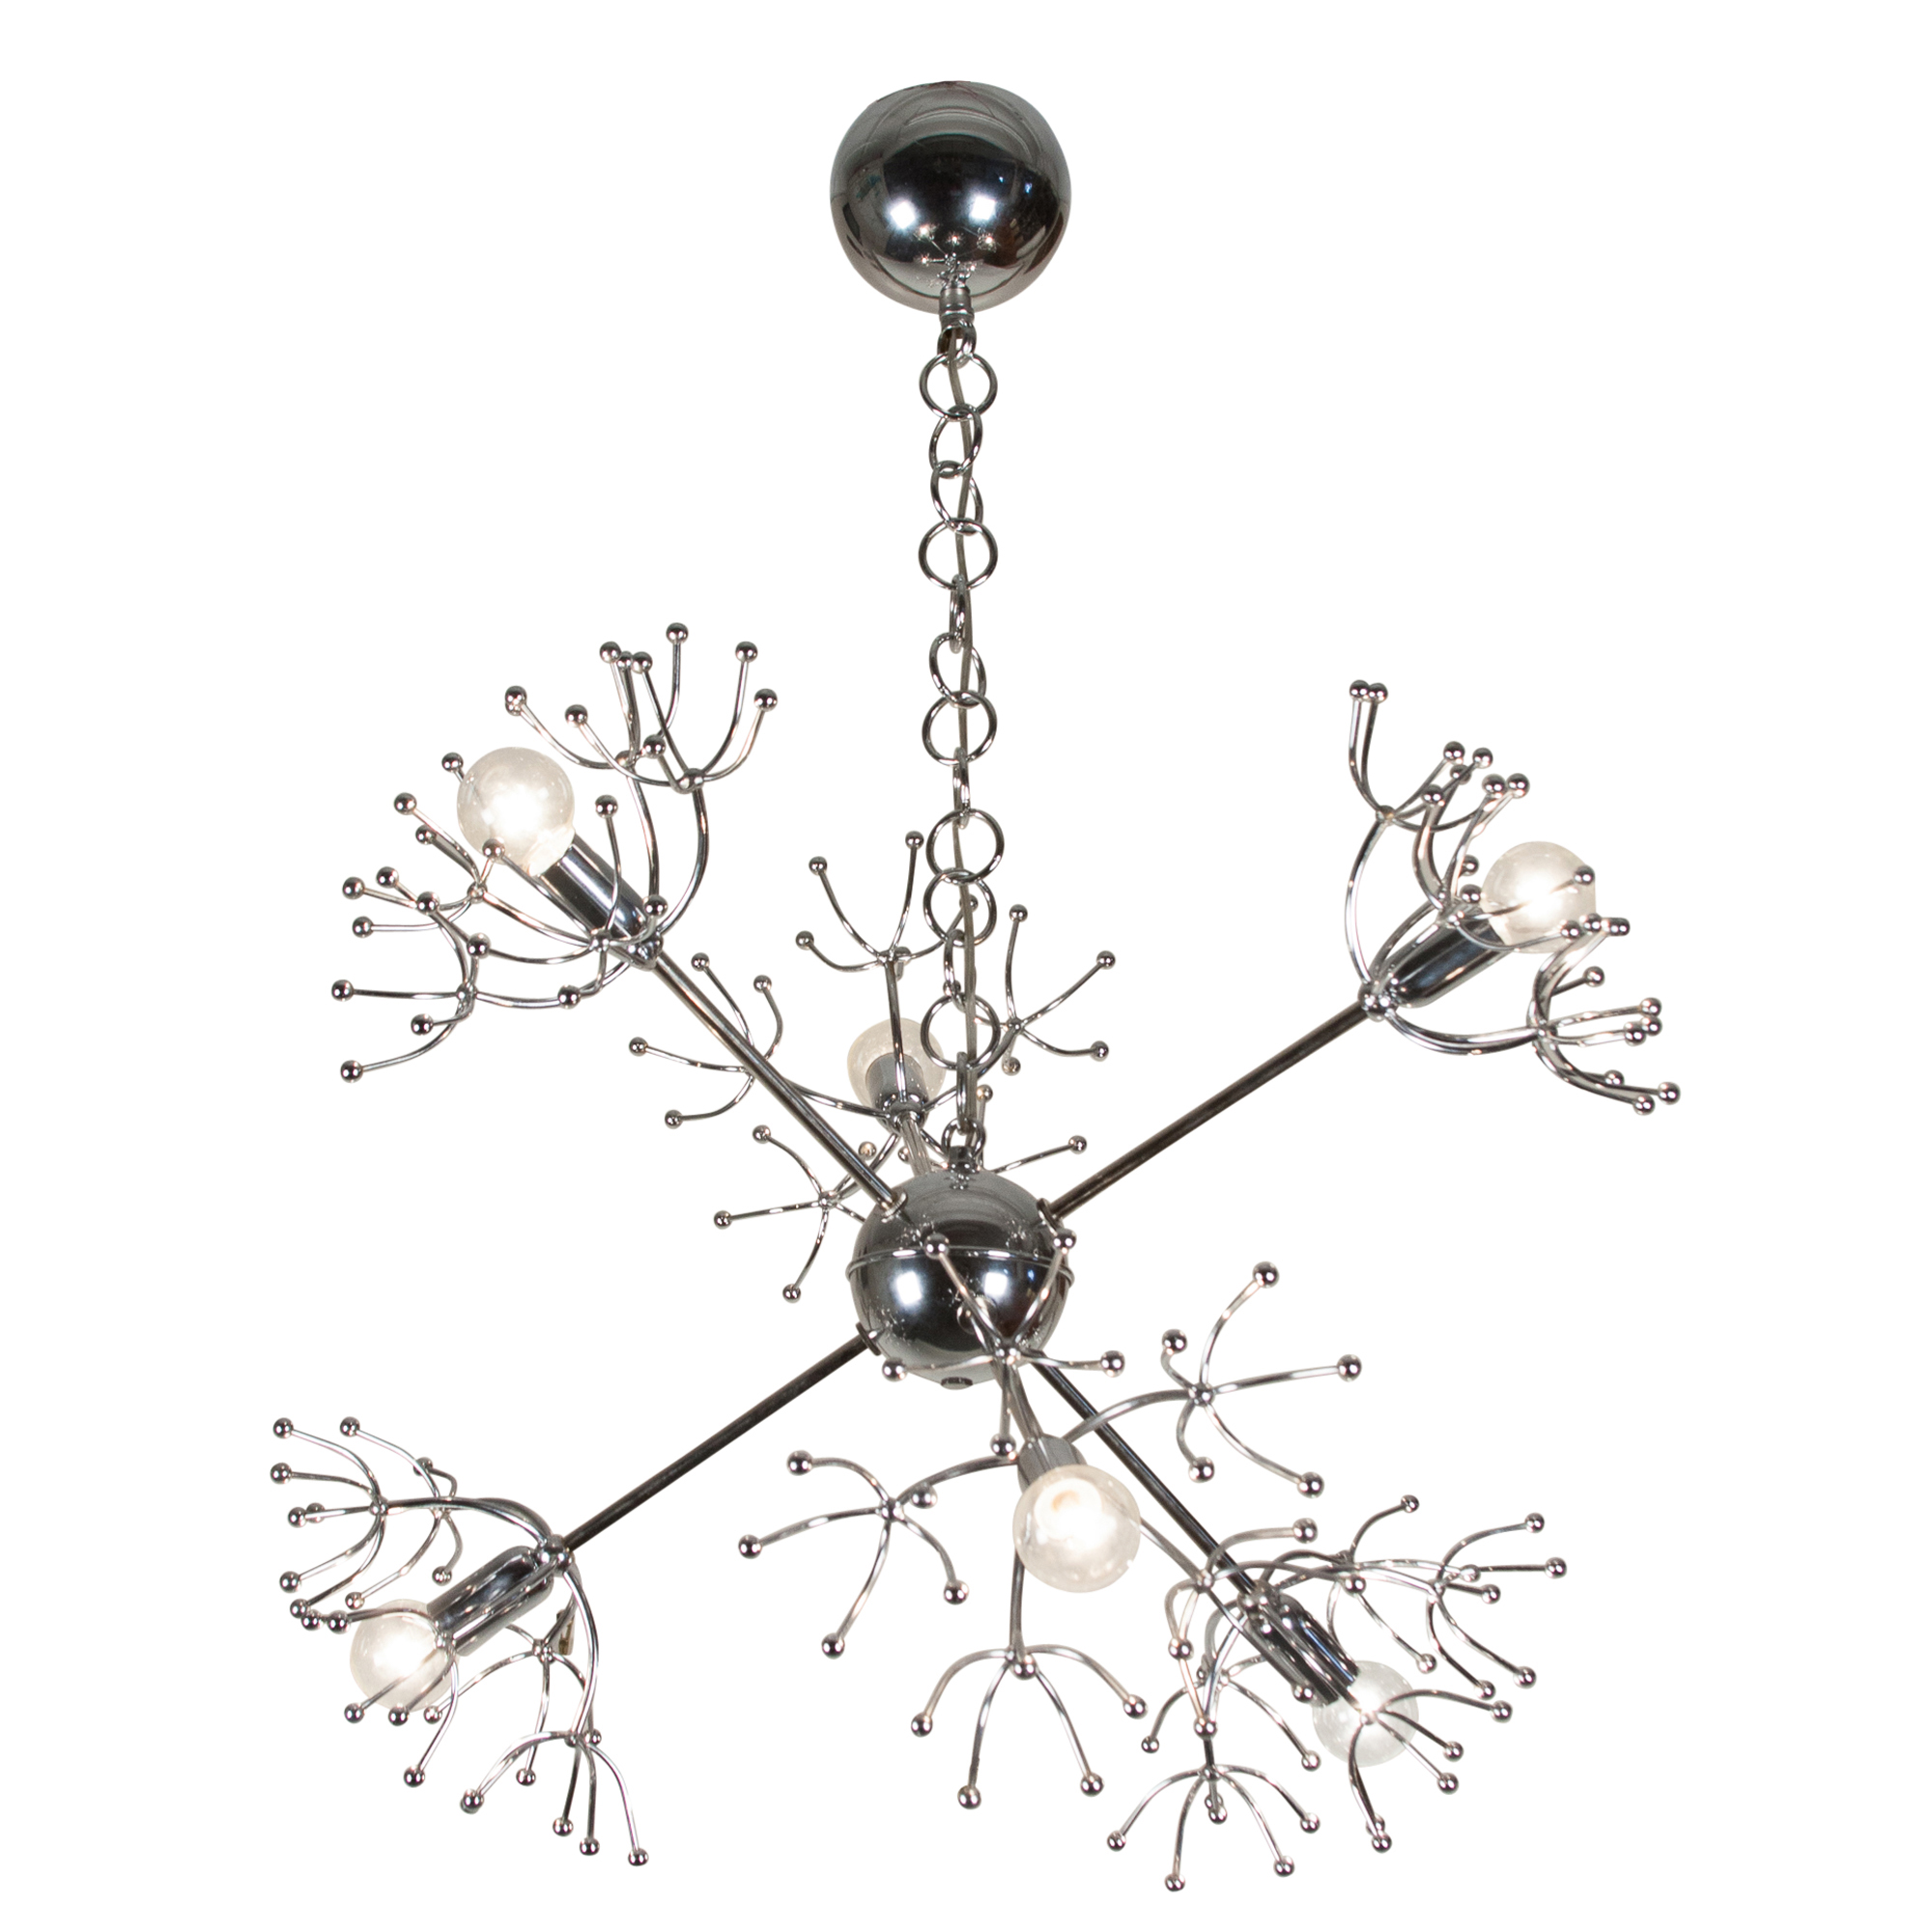 Craghoppers Men S T Shirts likewise 433823376577297197 moreover Hand Forged Iron Lotus Blossom Candlesticks S3 also Star Wall Clock further Birds Eye View Furniture Clipart 16728. on the sofa bed shop